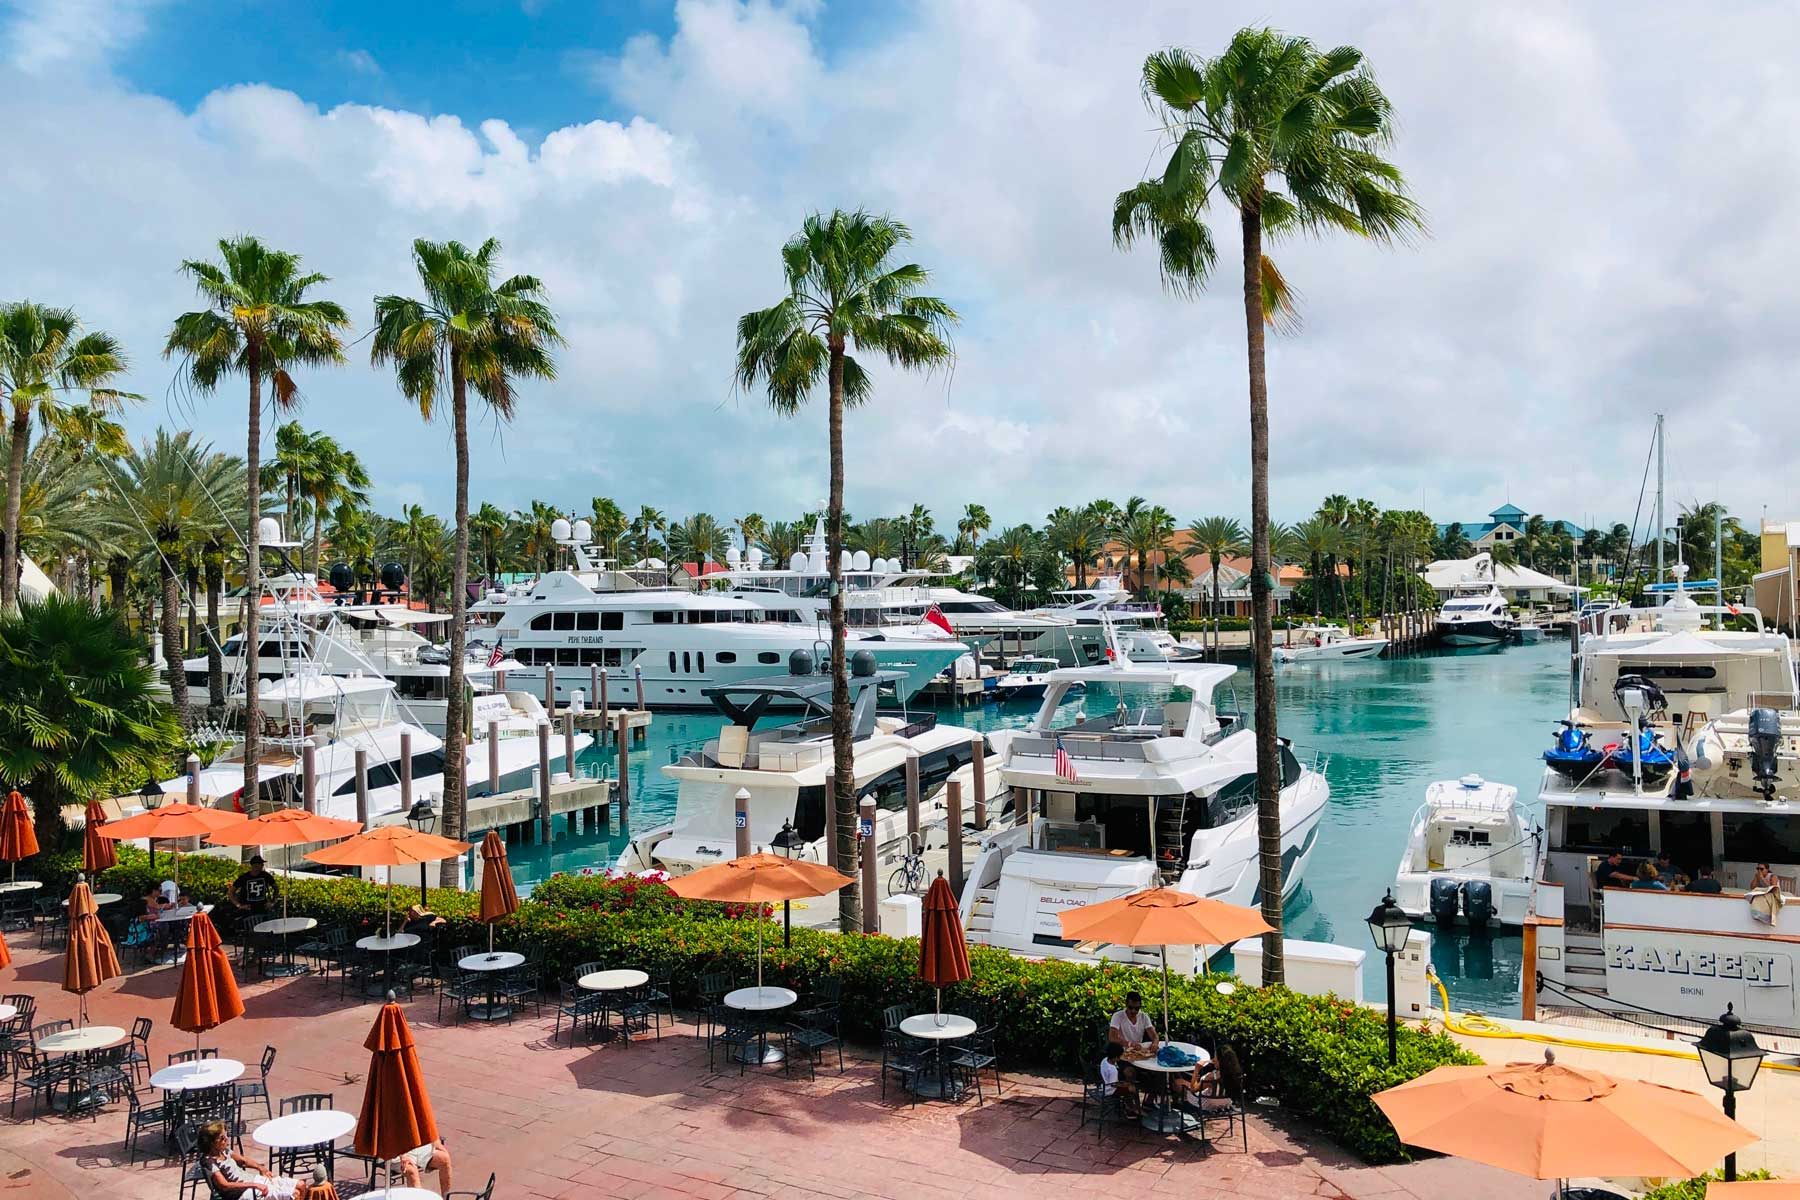 View of the marina of the Atlantis hotel in Nassau, Bahamas on May 1, 2019.